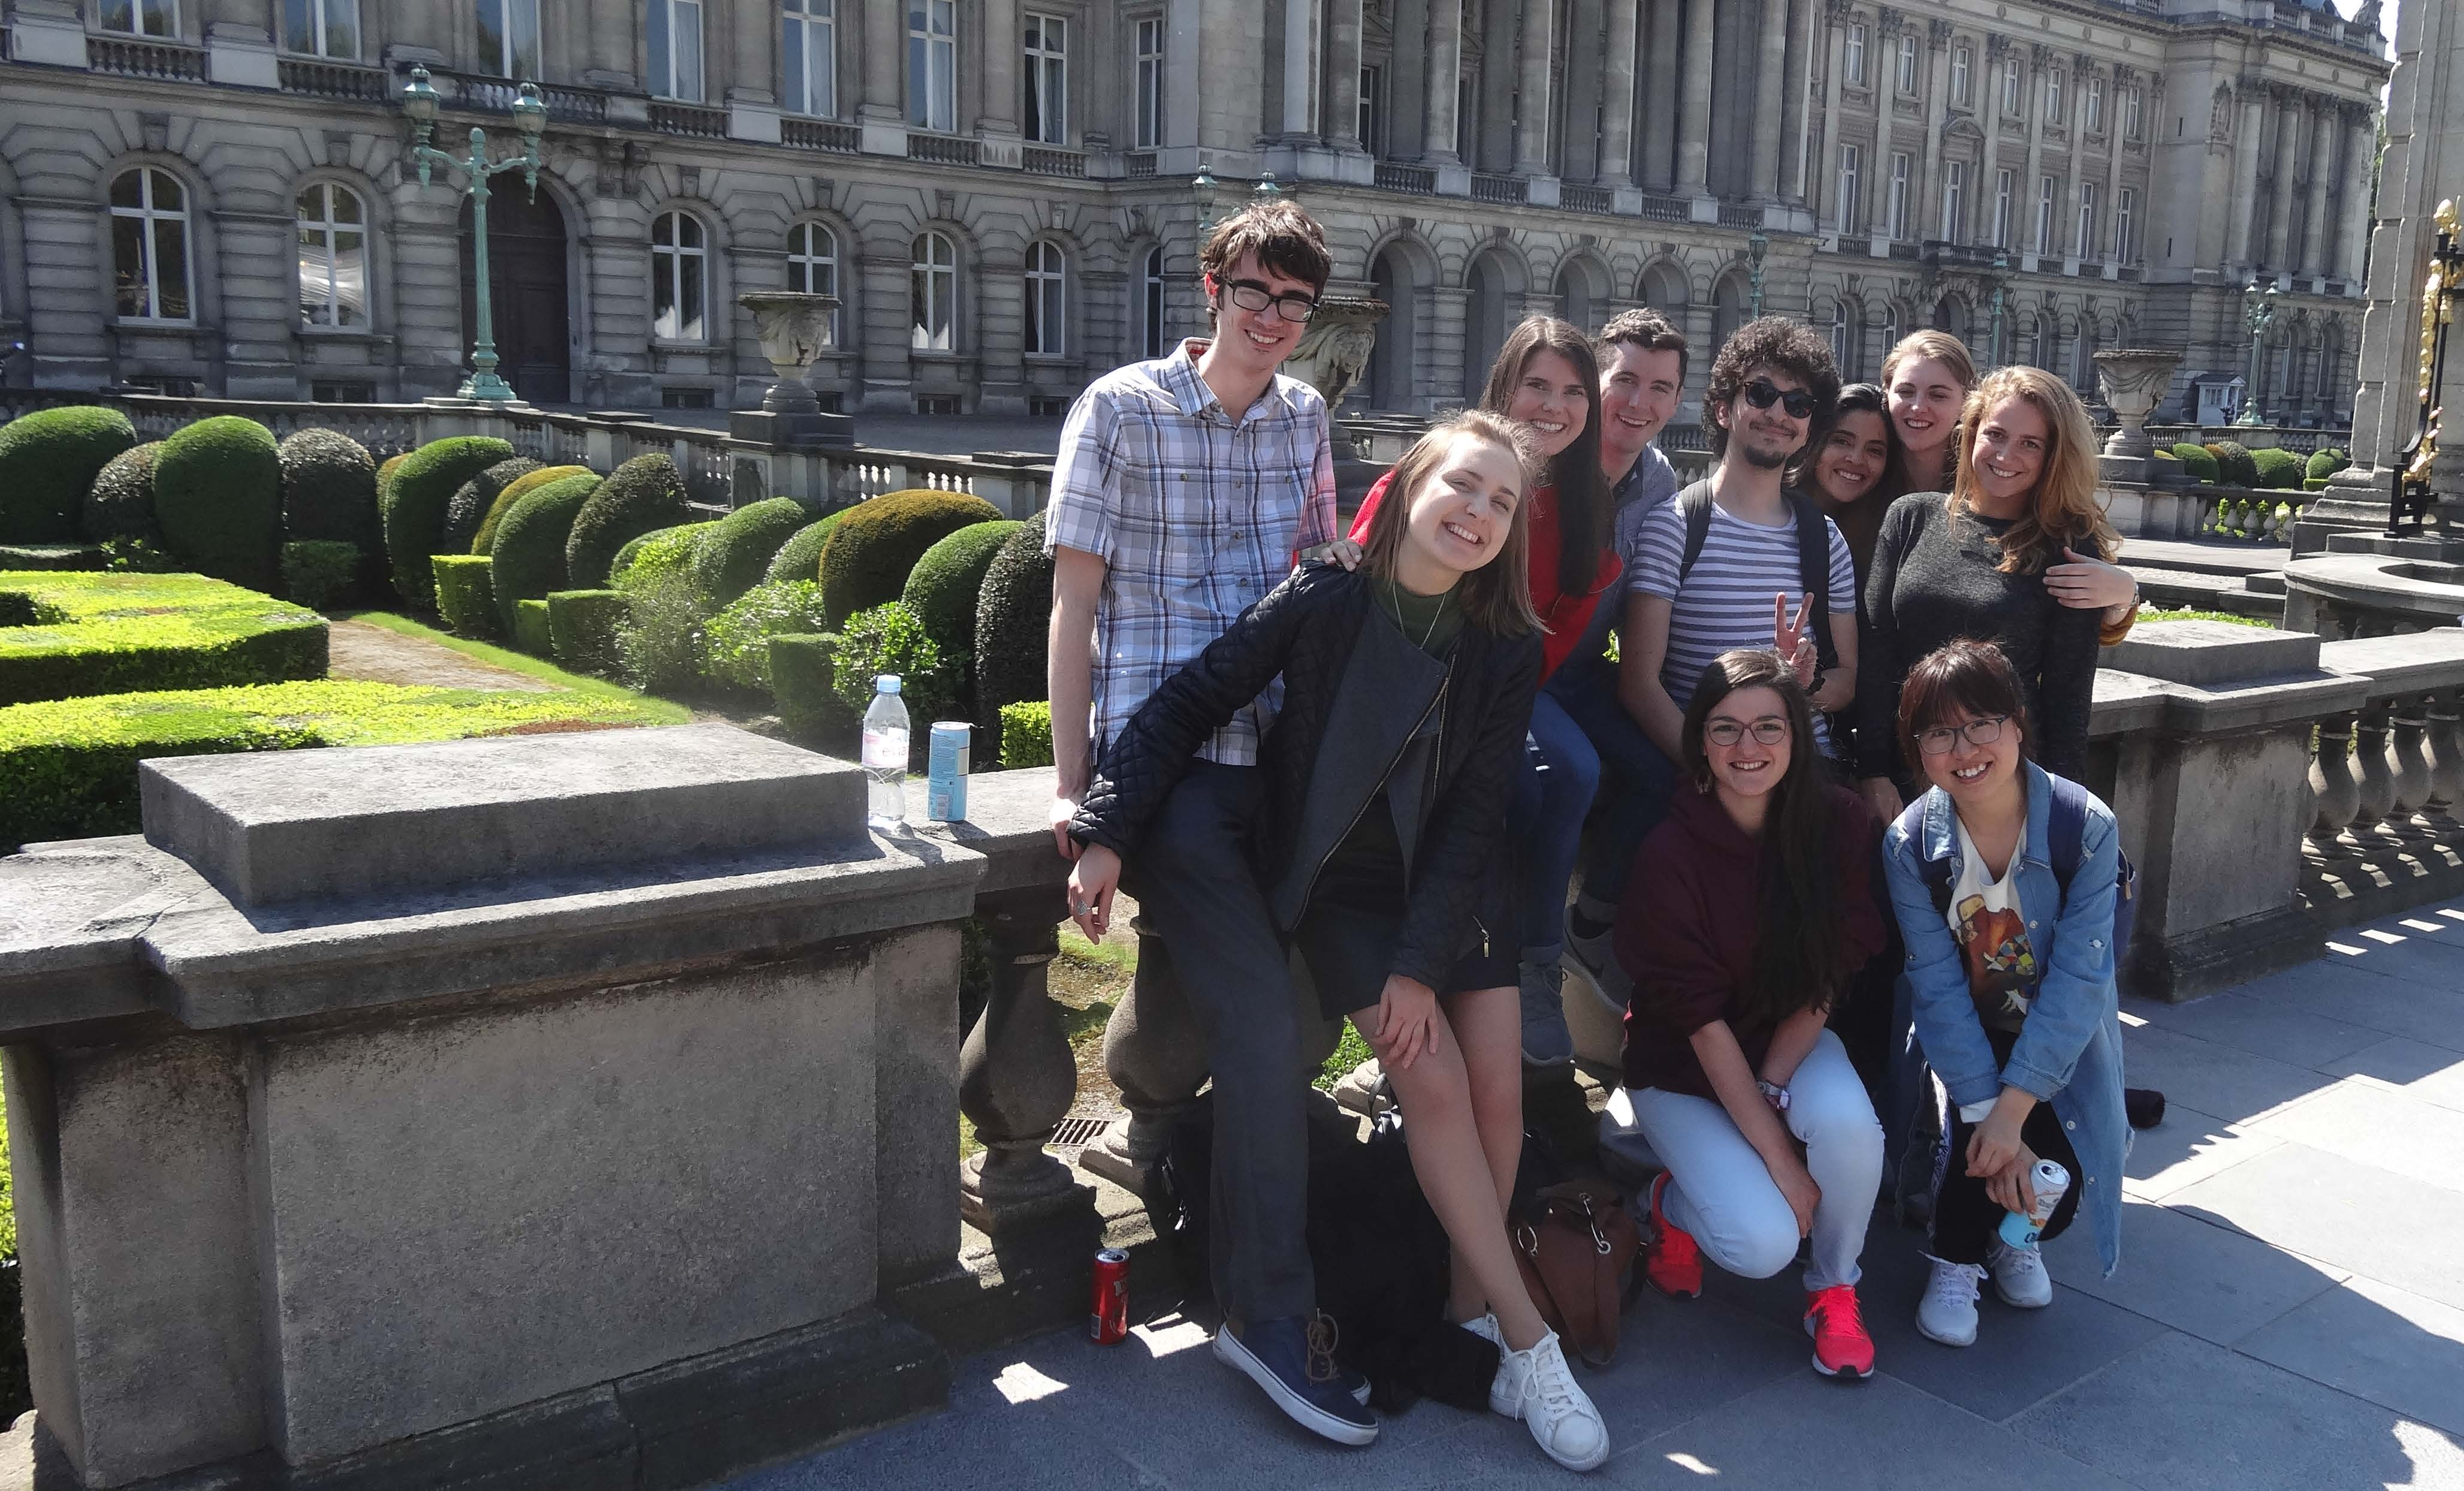 Group picture in front of the Royal Palace of Brussels.